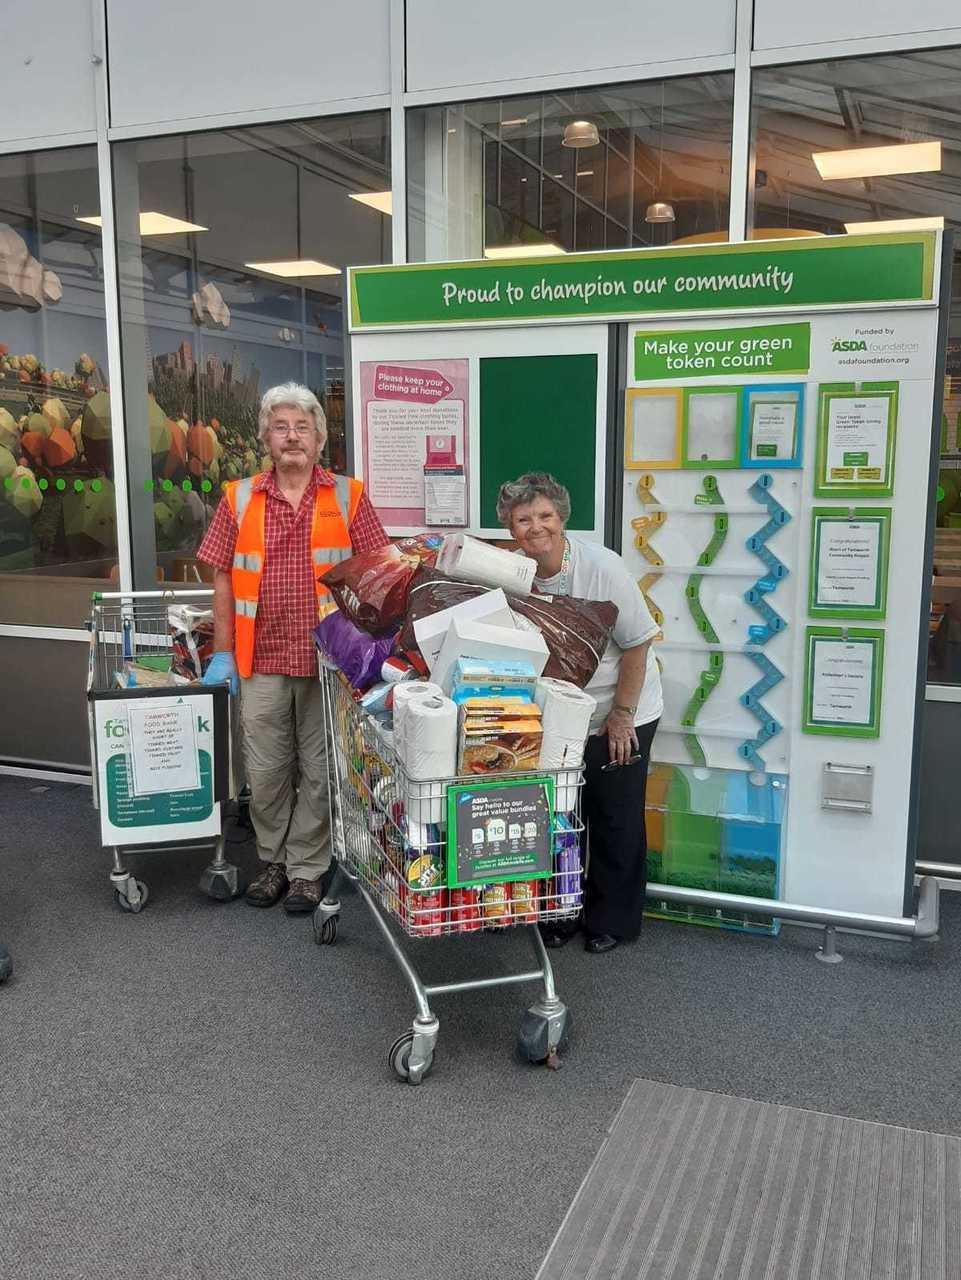 Generous gesture to food bank | Asda Tamworth